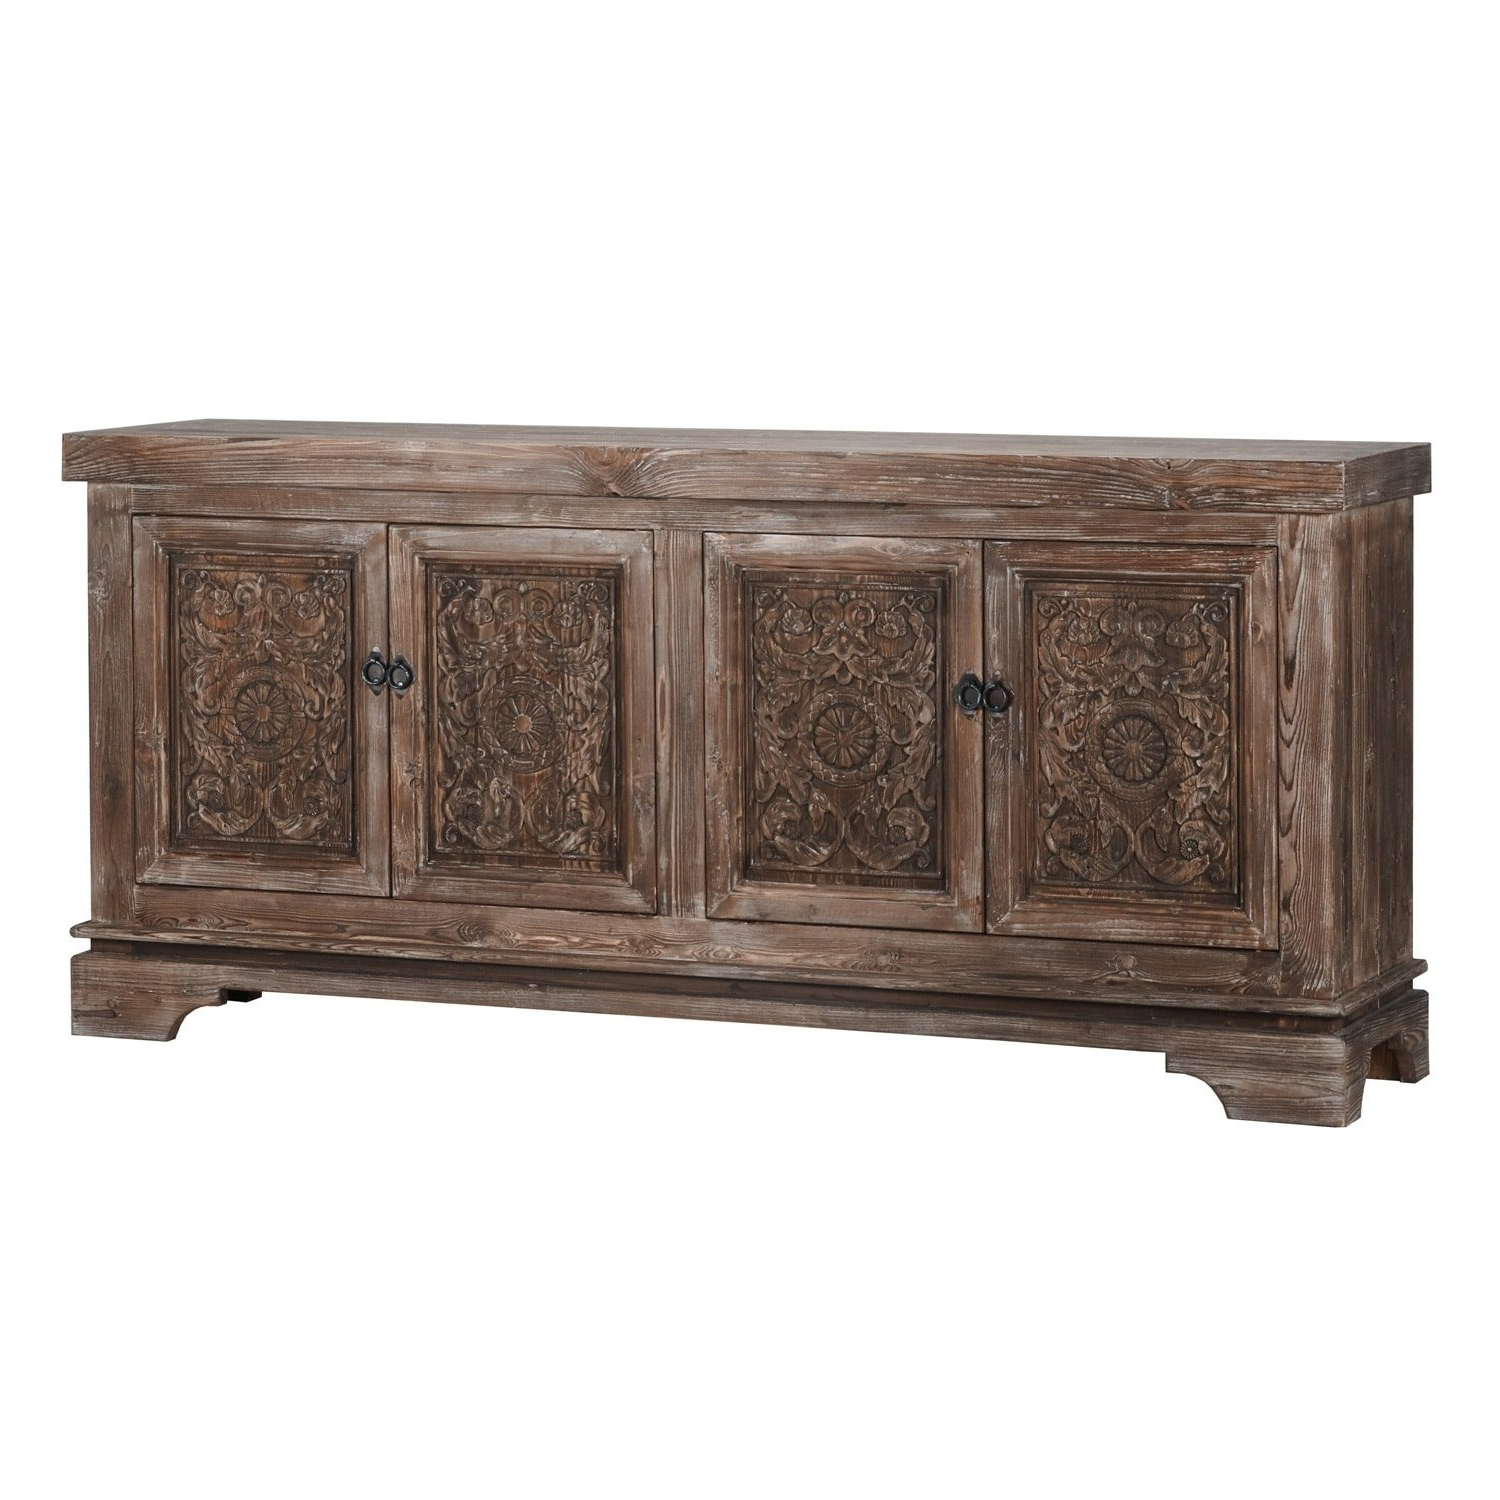 Shop Allen Rustic Brown Reclaimed Pine 82 Inch Sideboardkosas With 2018 Blue Stone Light Rustic Black Sideboards (View 13 of 20)